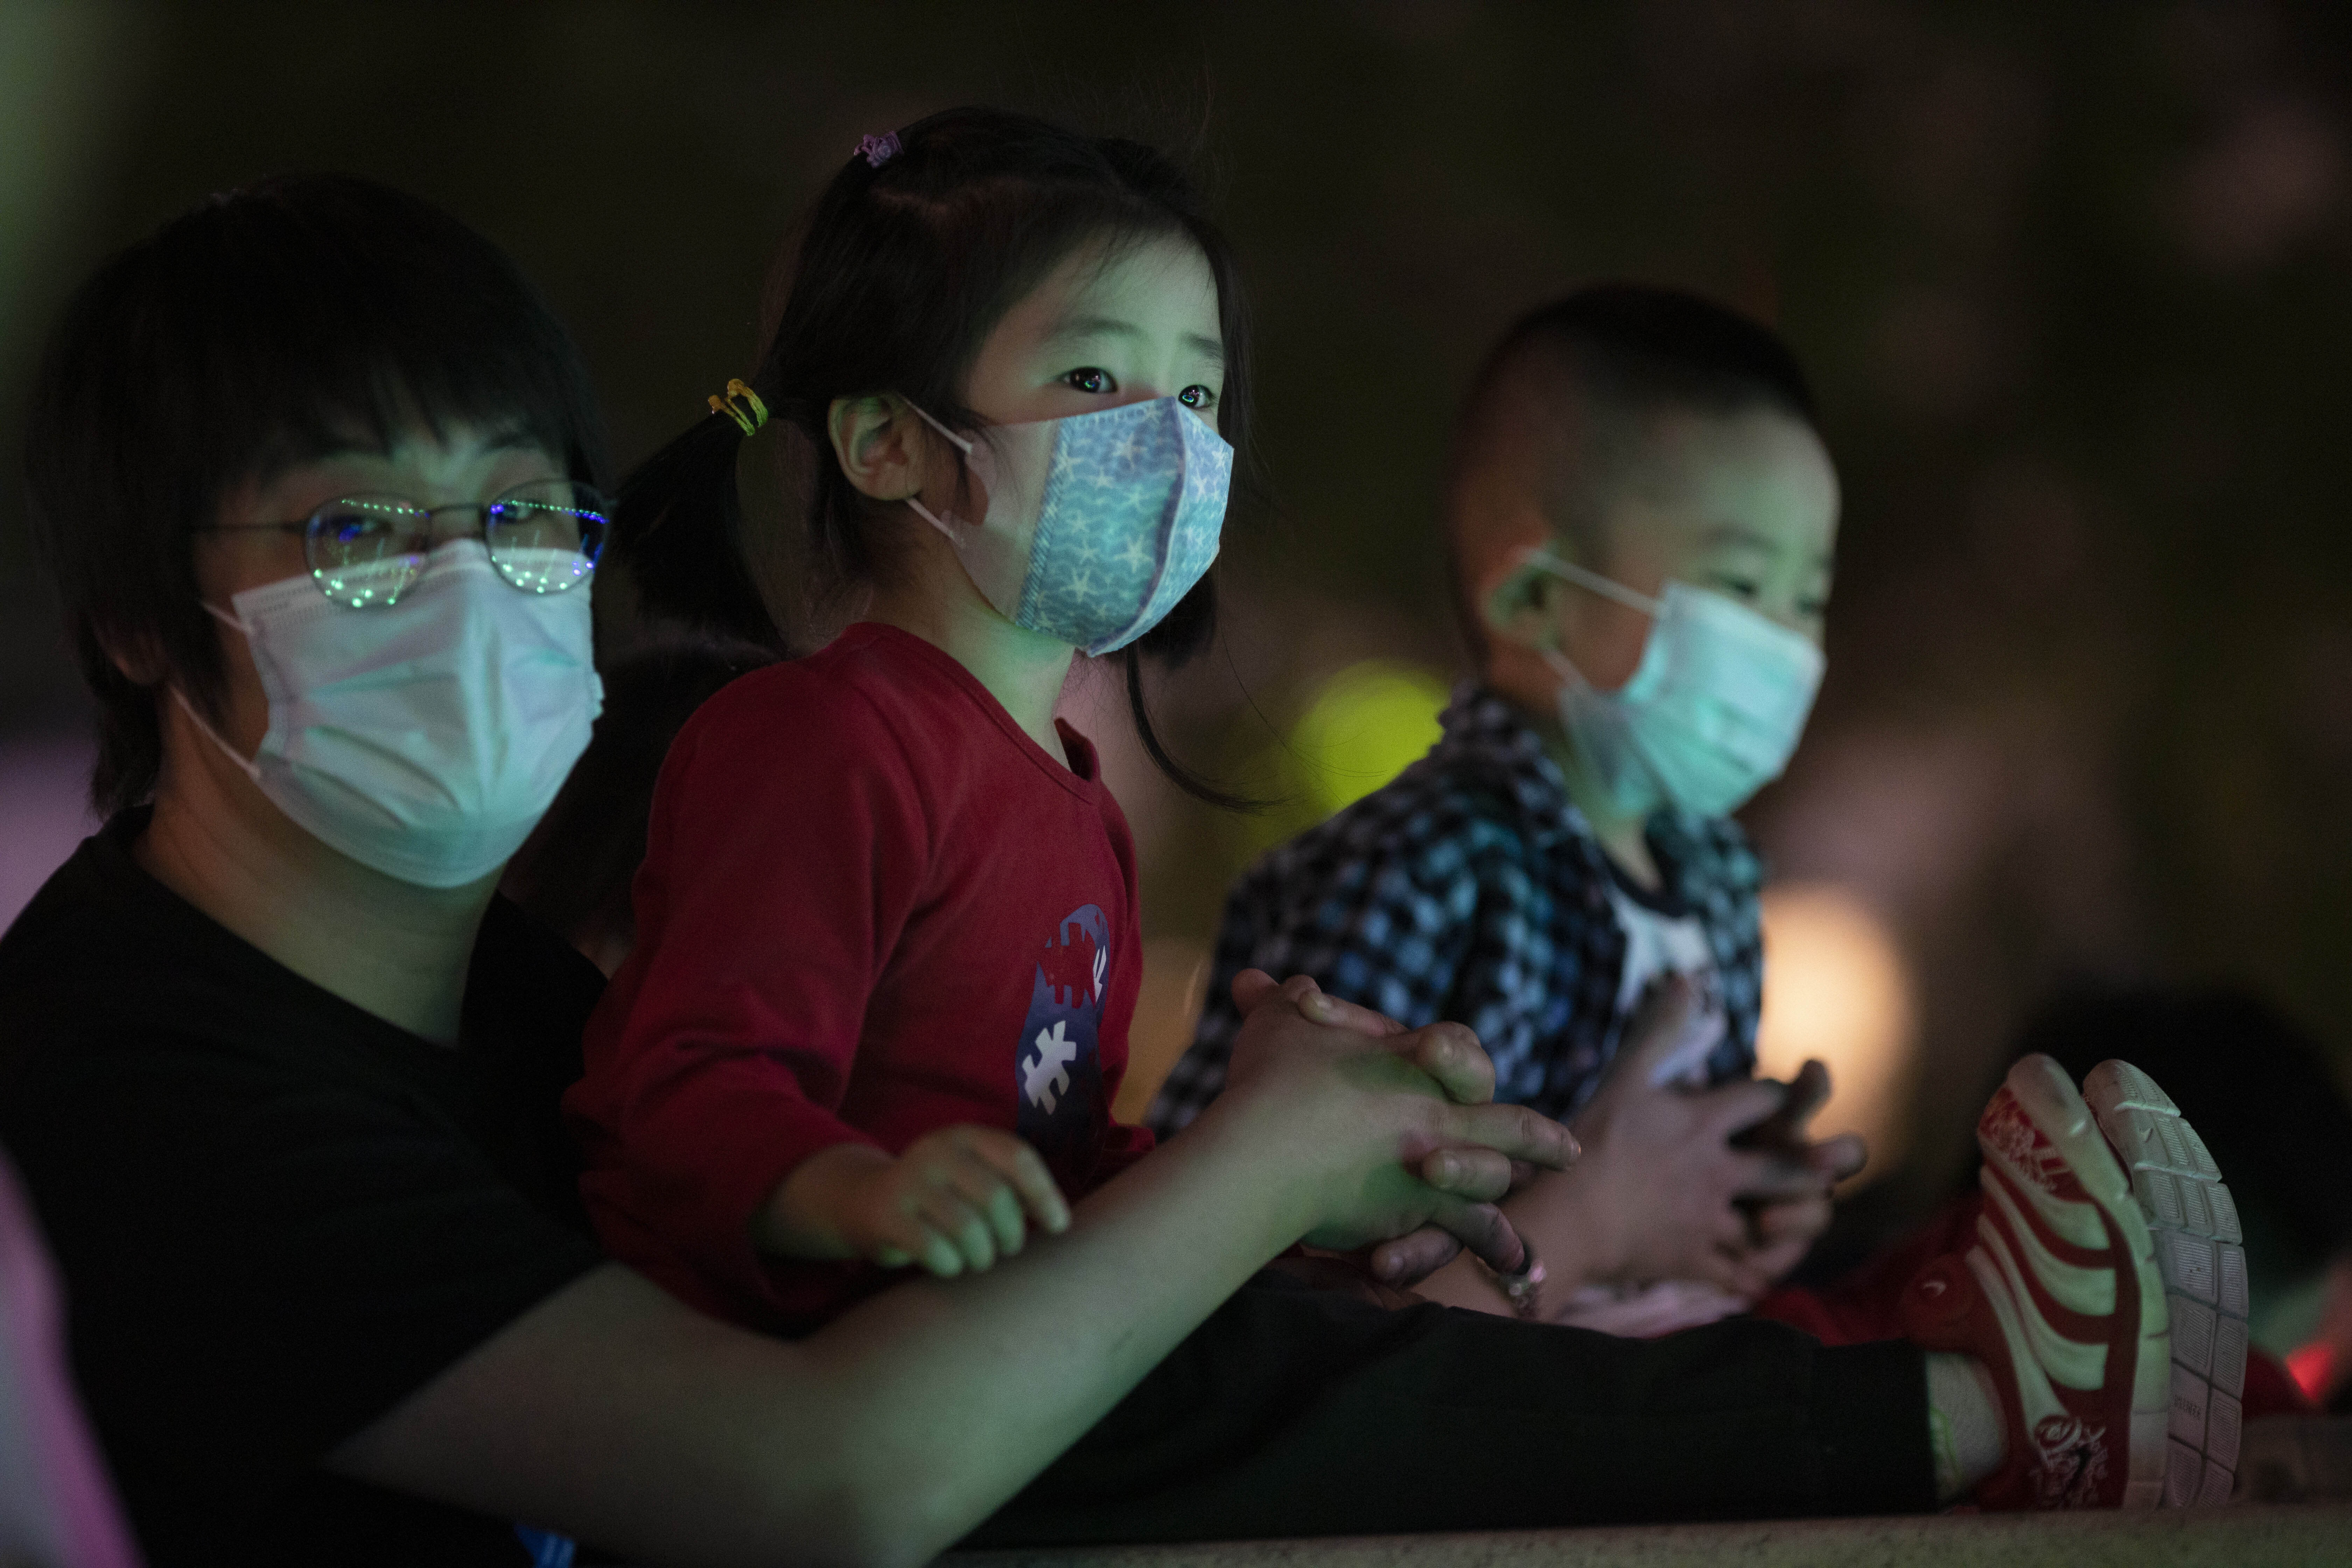 Residents wearing masks to curb the spread of the new coronavirus enjoy a cool evening near a water fountain in Beijing on Sunday, May 24, 2020. (AP Photo/Ng Han Guan)